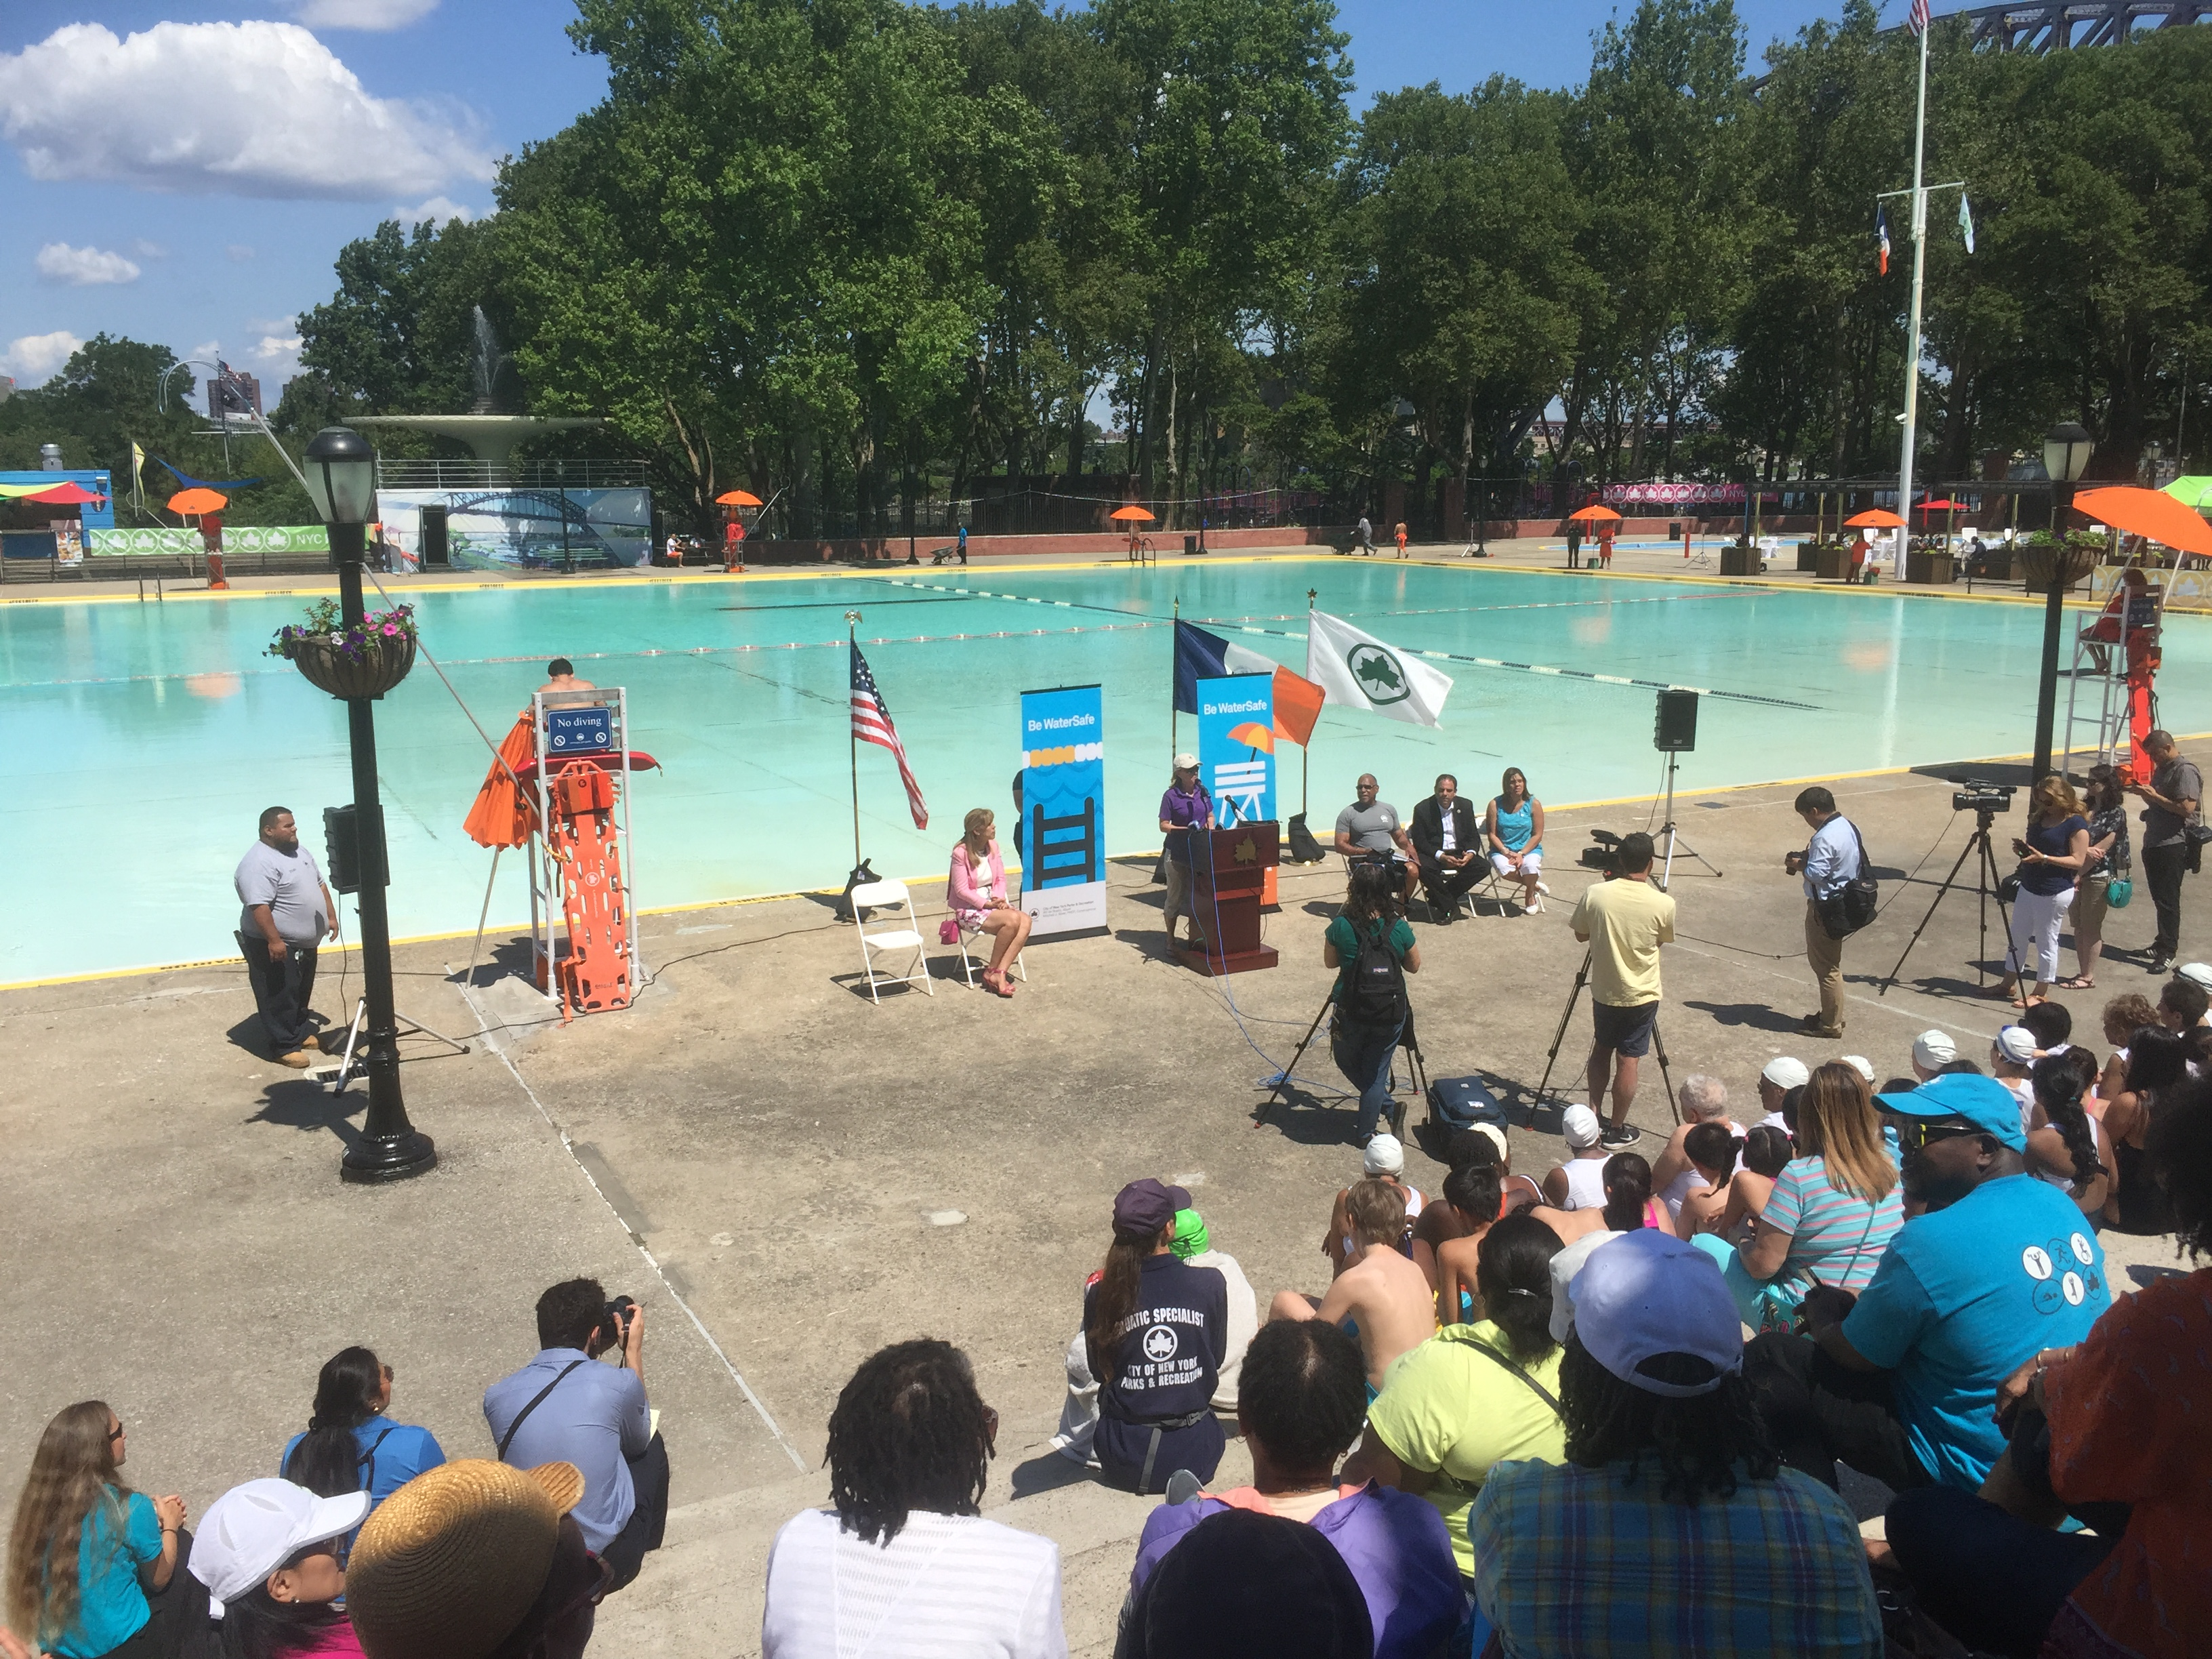 Astoria Park Pool is Open for Summer